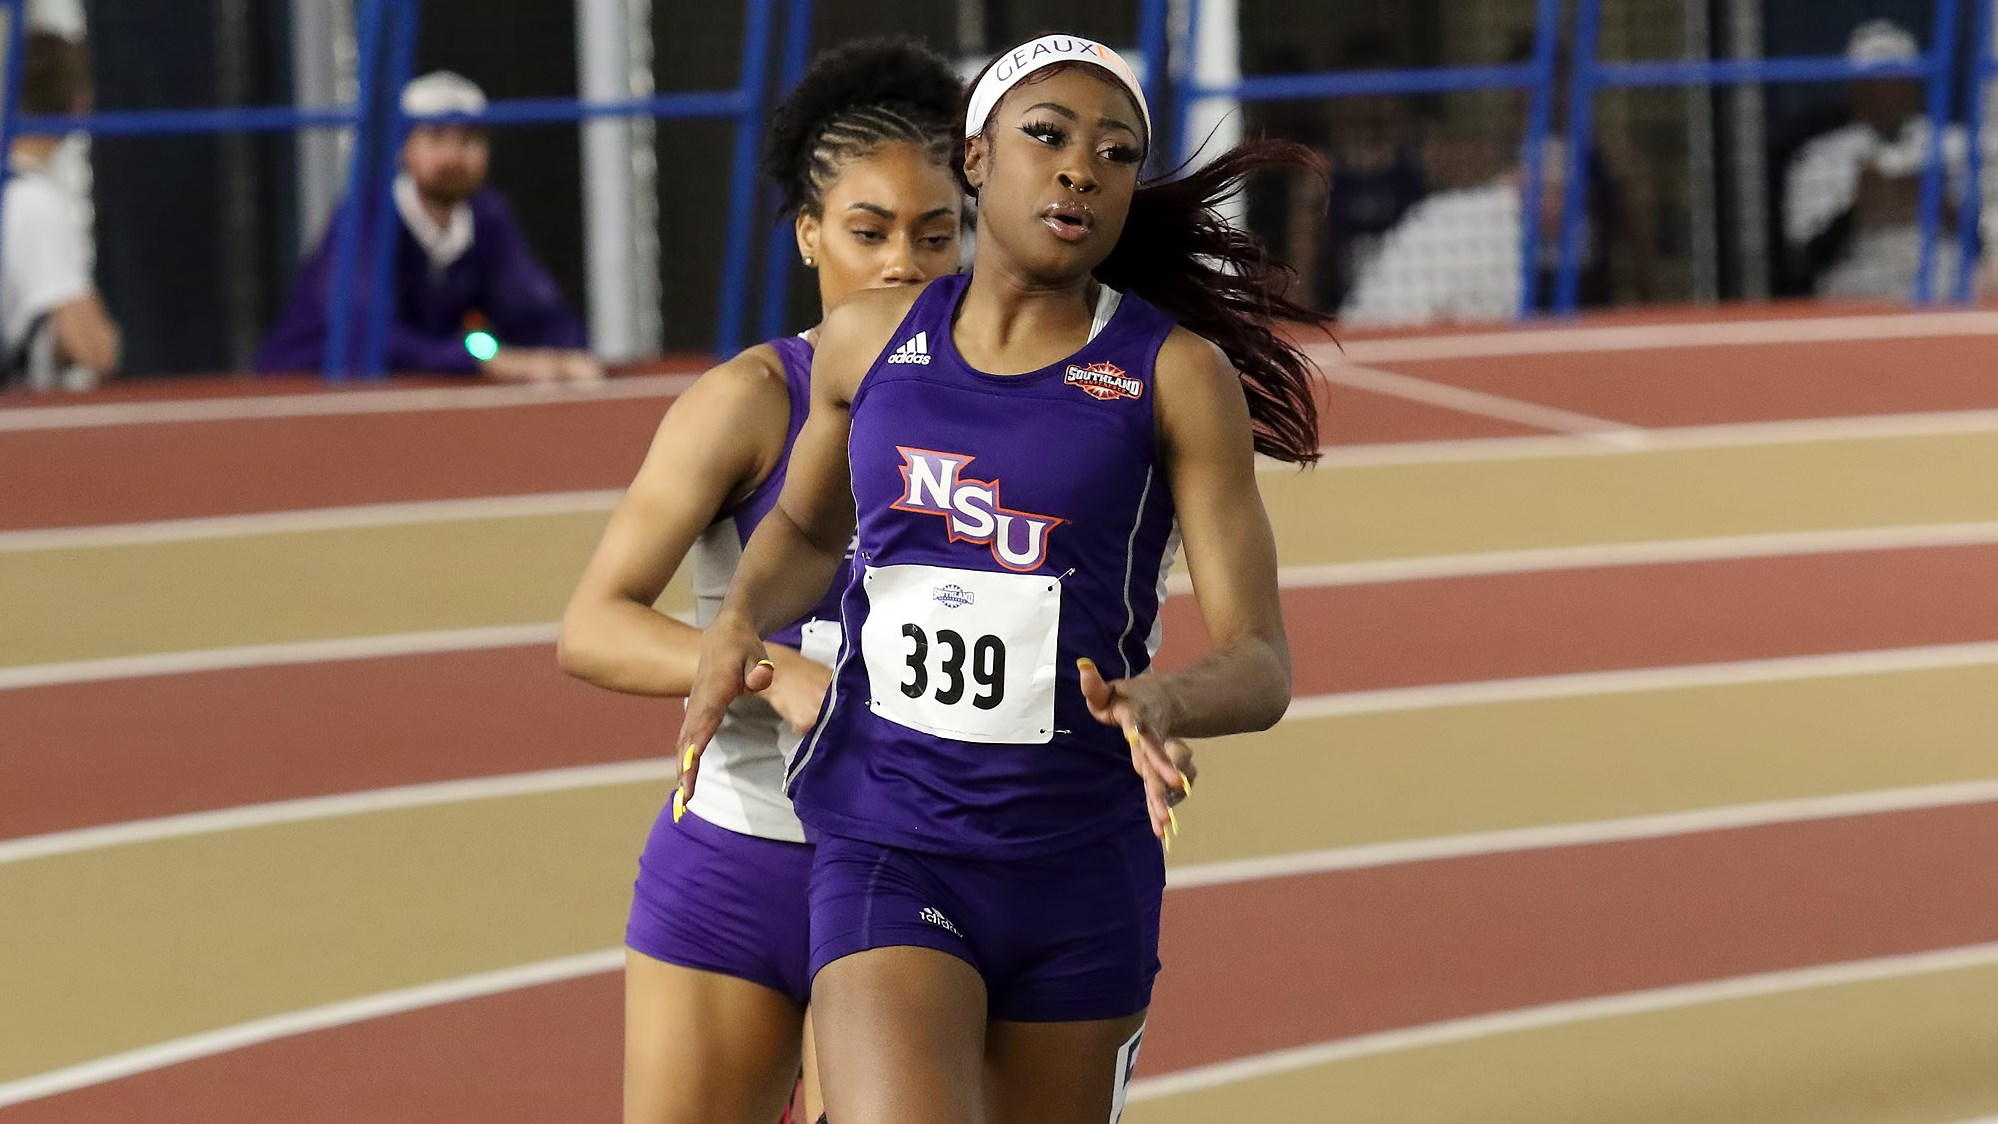 Kori Levingston - Lady Demon Track & Field - Northwestern